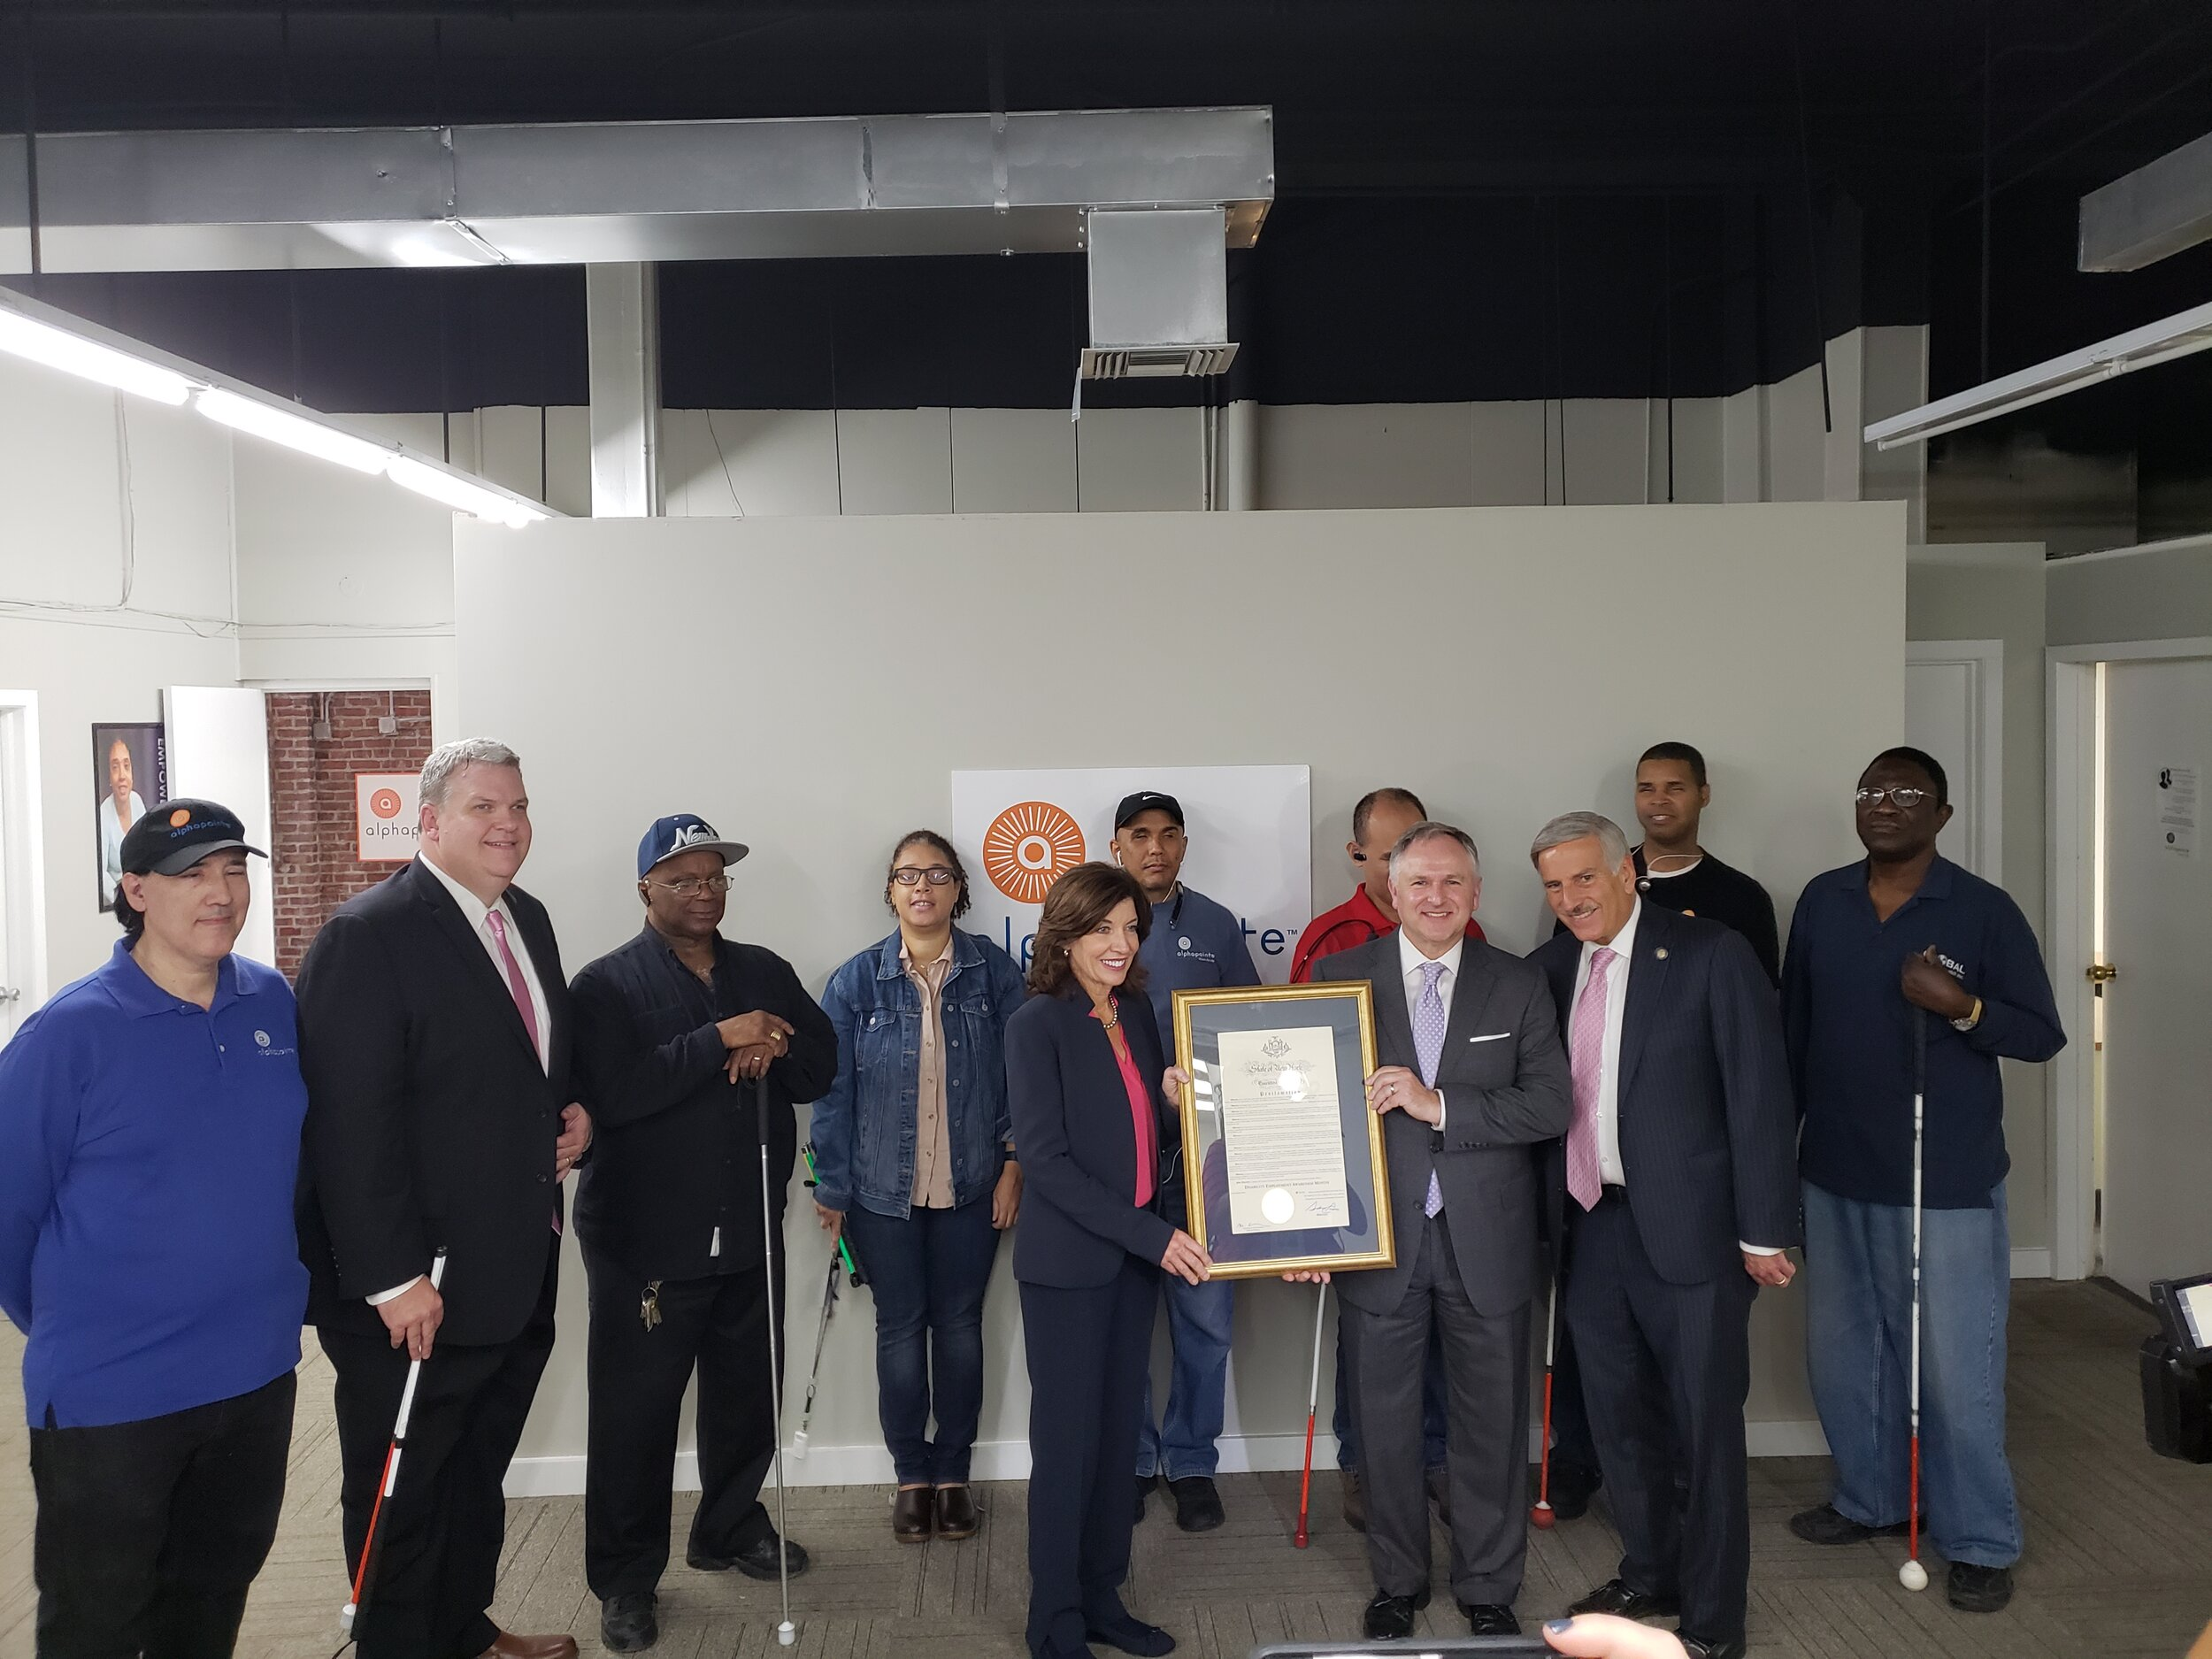 Assemblymember David Weprin, Alphapointe Senior Manager of Public Policy Scott Thornhill, Director of Development Anthony Luisi and workers stand with Lieutenant Governor Kathleen Hochul as she presents a proclamation. Photo courtesy of Weprin's office.